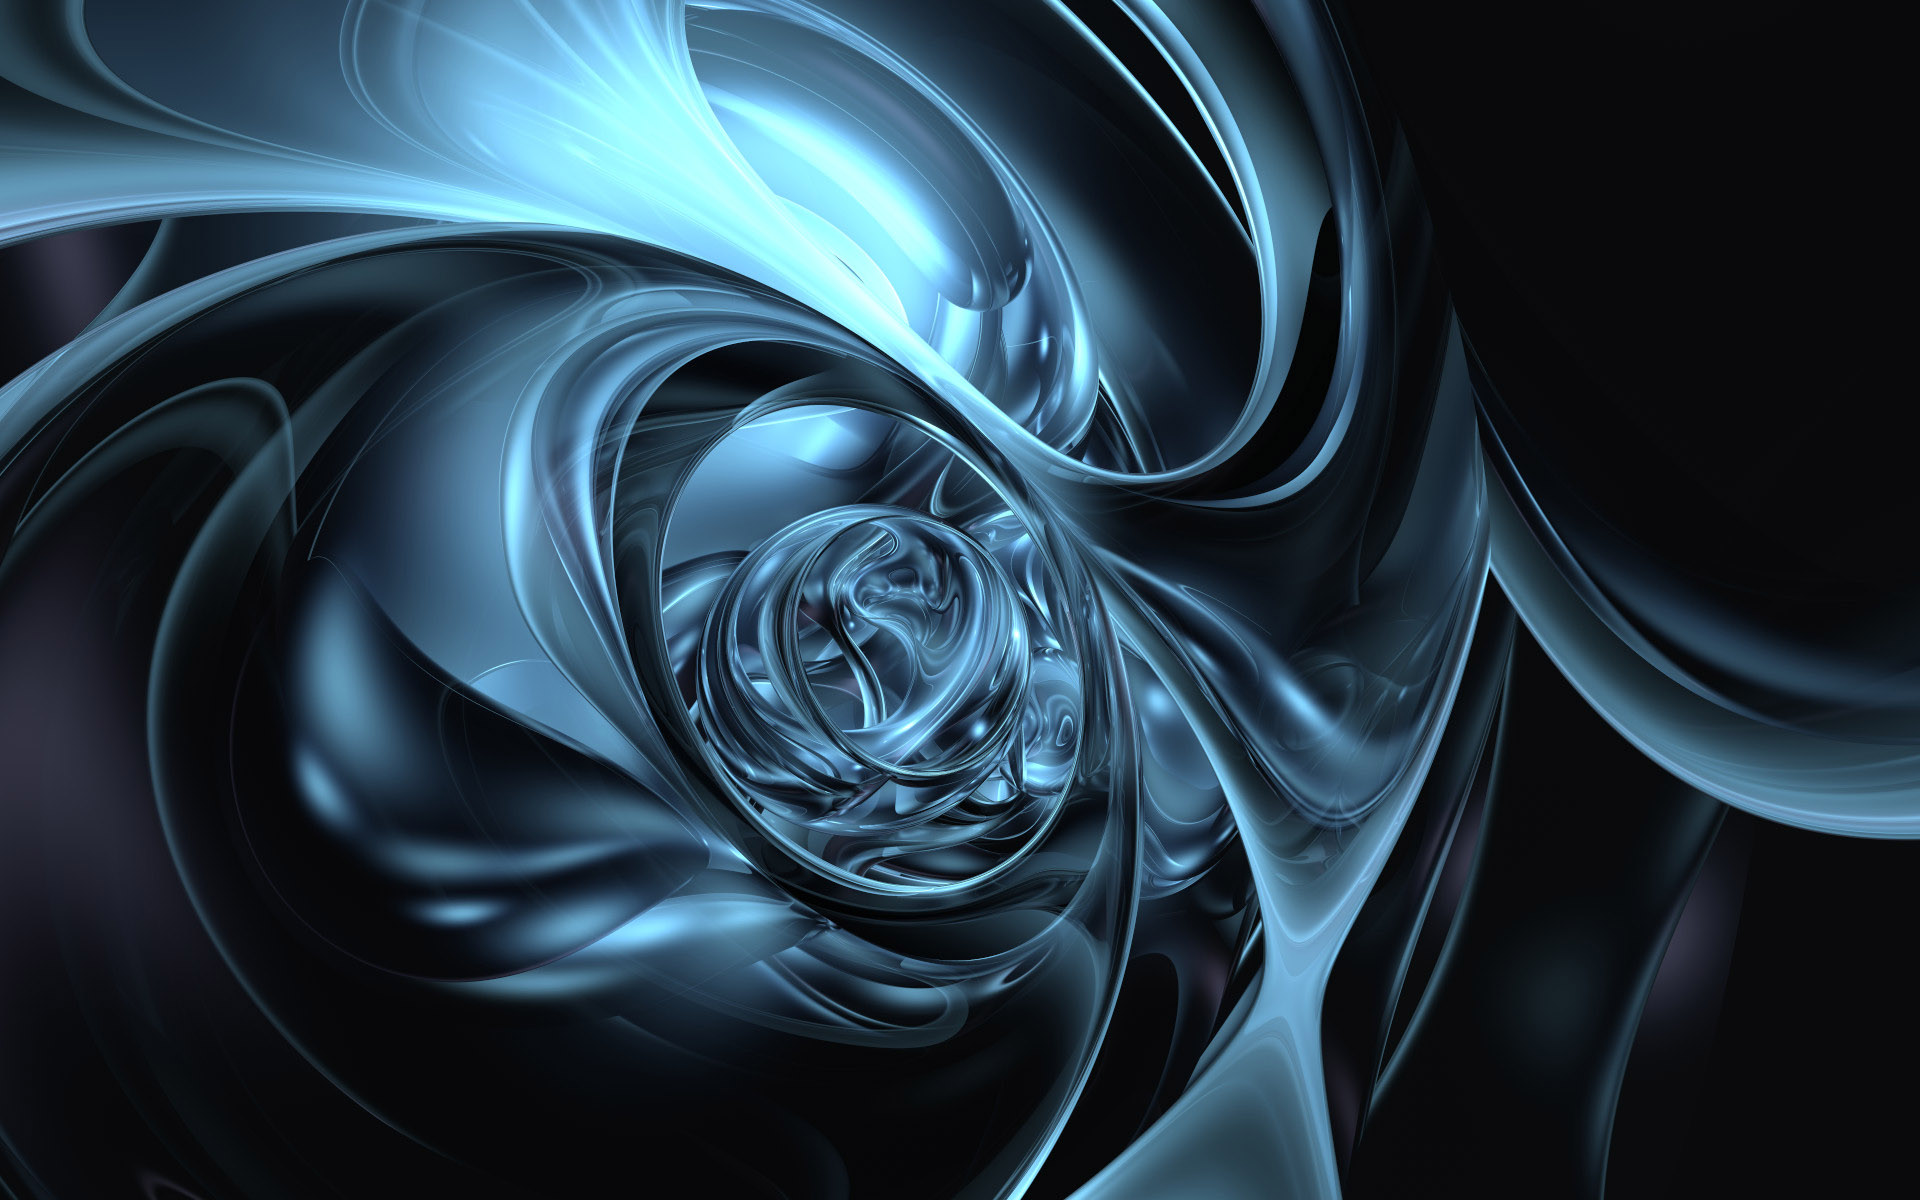 abstract 3d wallpaper 1920x1080 - photo #28